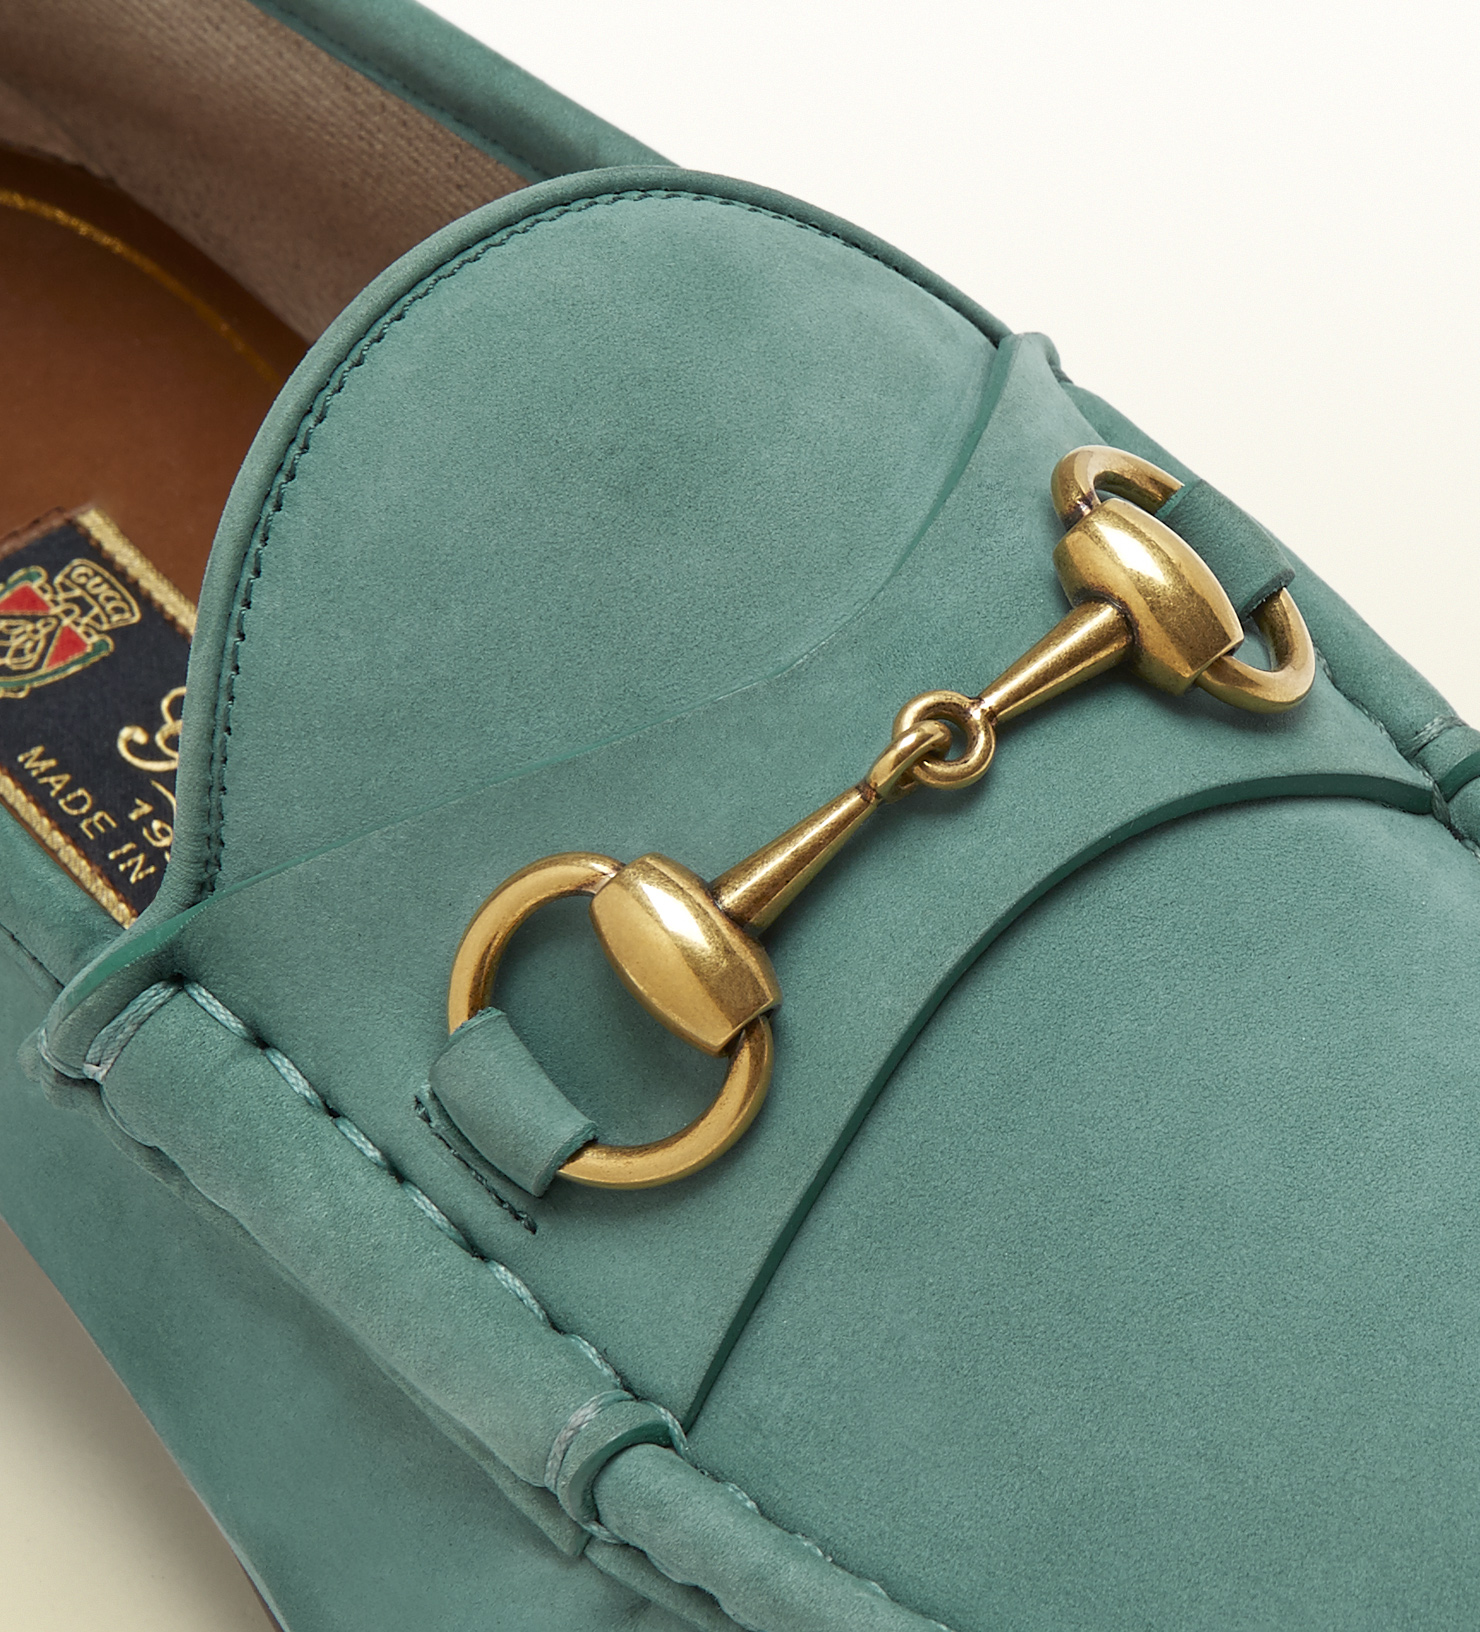 e2653ede3 Gucci 1953 Horsebit Loafer In Suede in Green for Men - Lyst